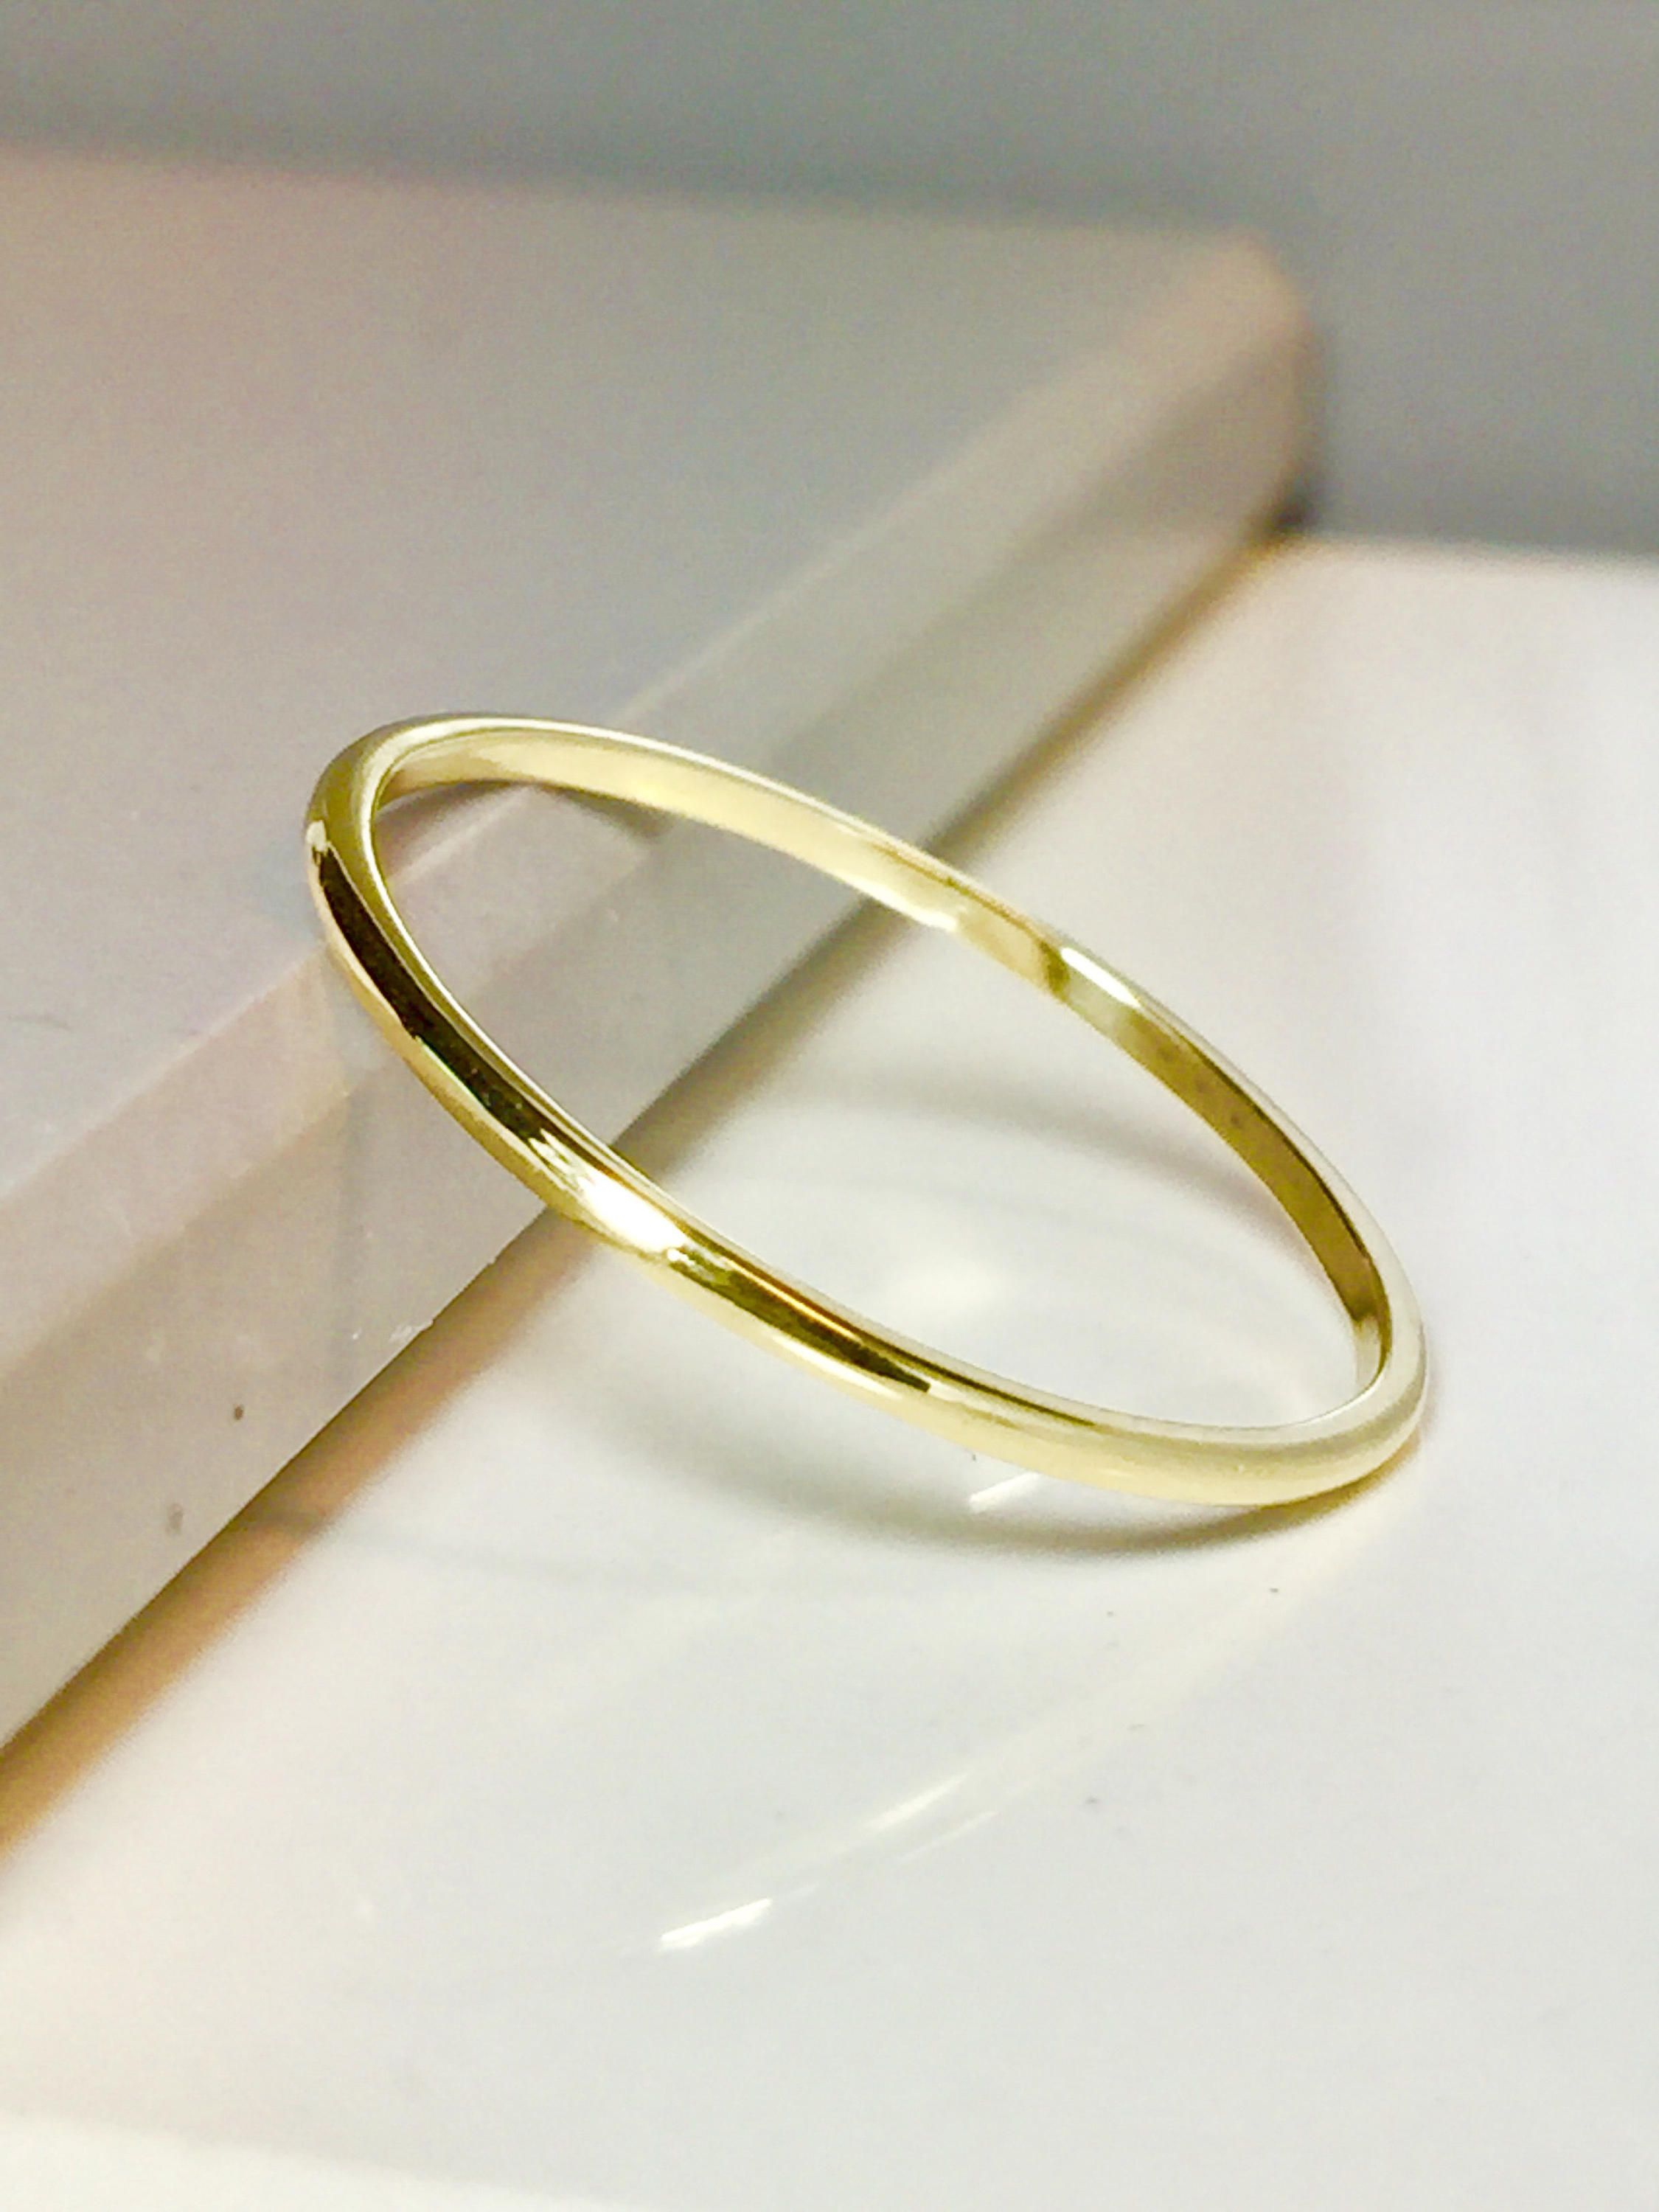 Sale 14k 10k Gold Ladies Ring Minimalist Gold Ring Gold Etsy Boho Rings Gold White Gold Ruby Ring Gold Thumb Rings